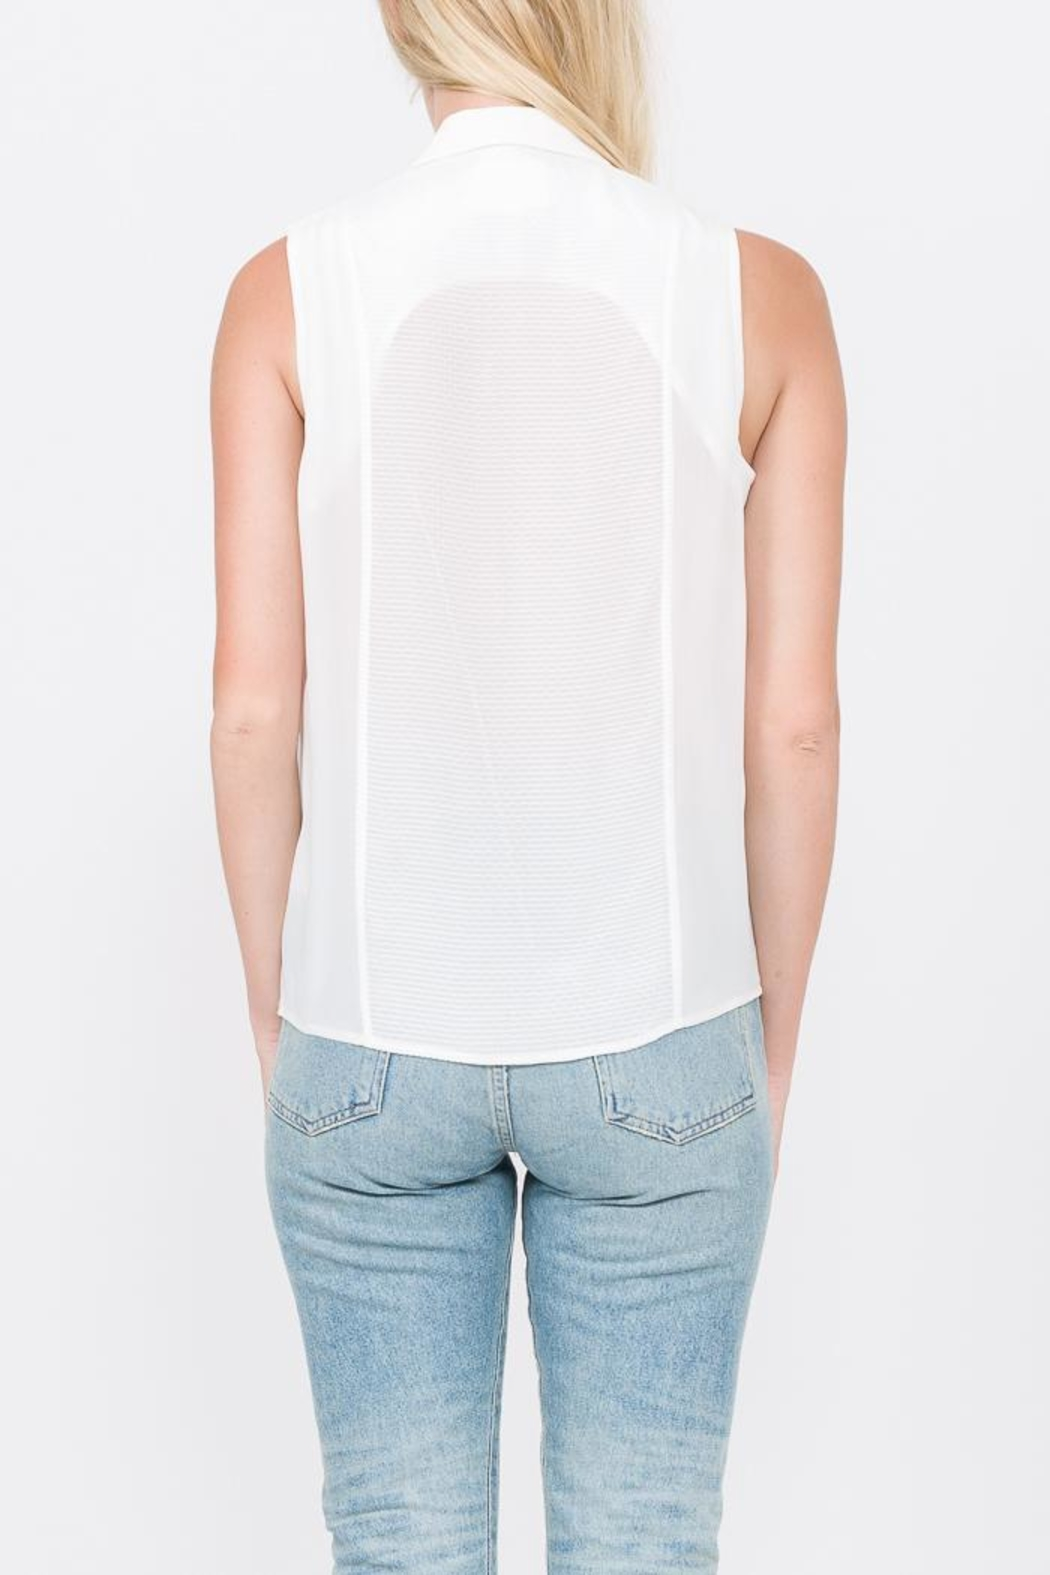 QUINN Chelsea Button Up Top - Side Cropped Image